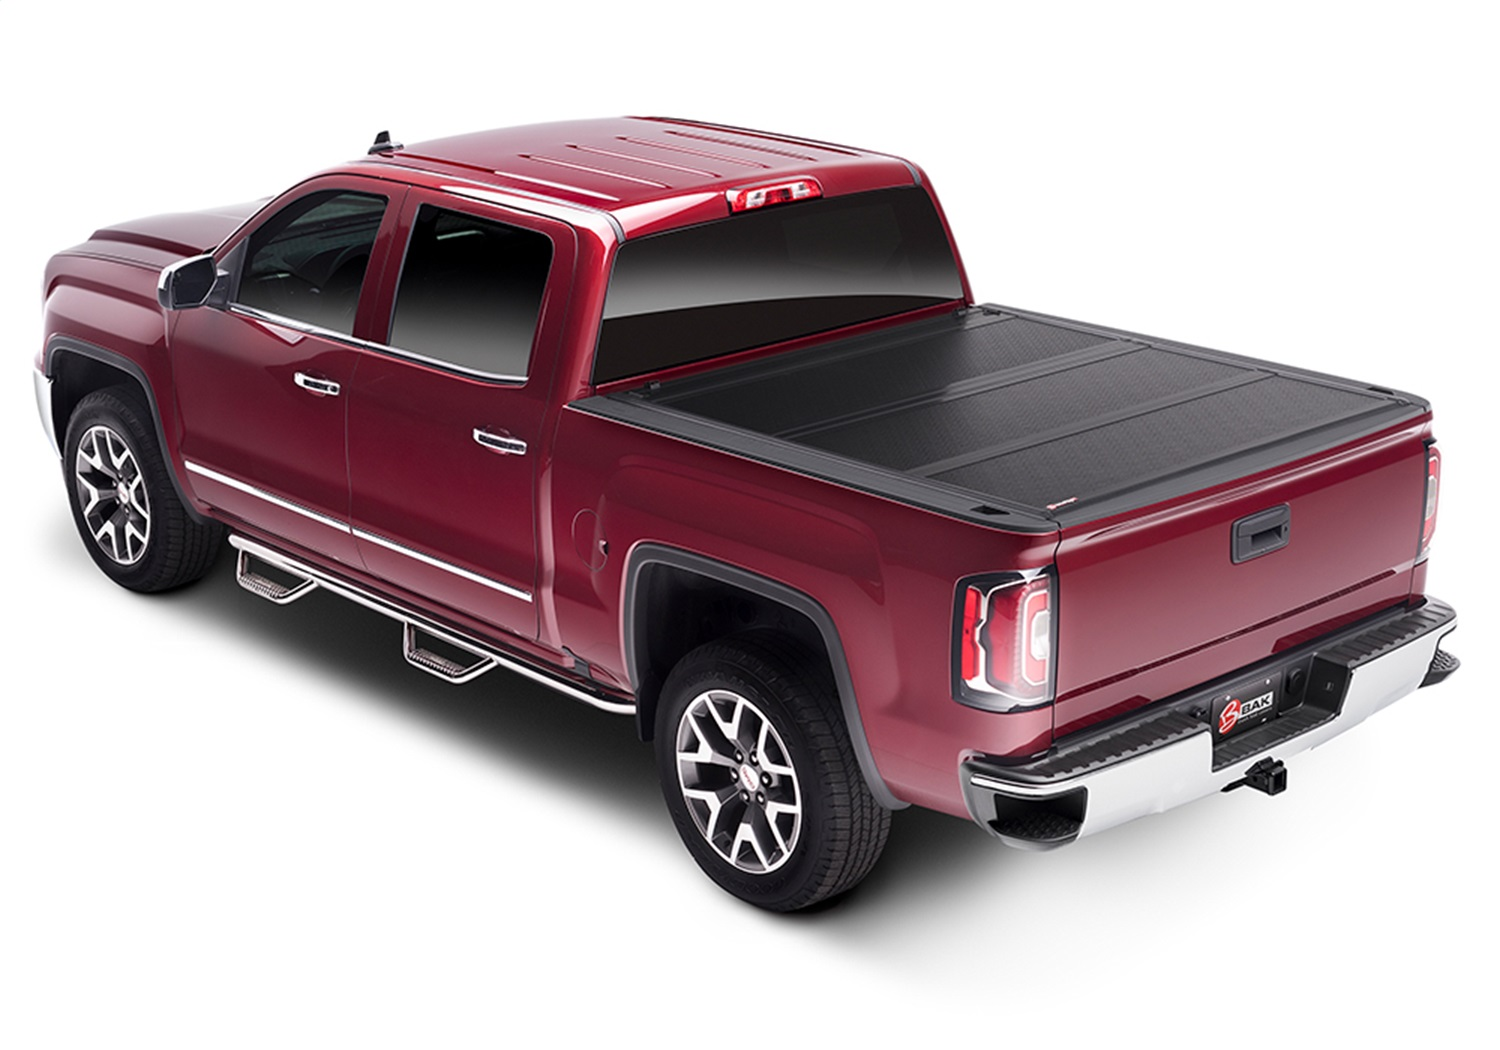 BAK Industries 1126120 BAKFlip FiberMax Hard Folding Truck Bed Cover